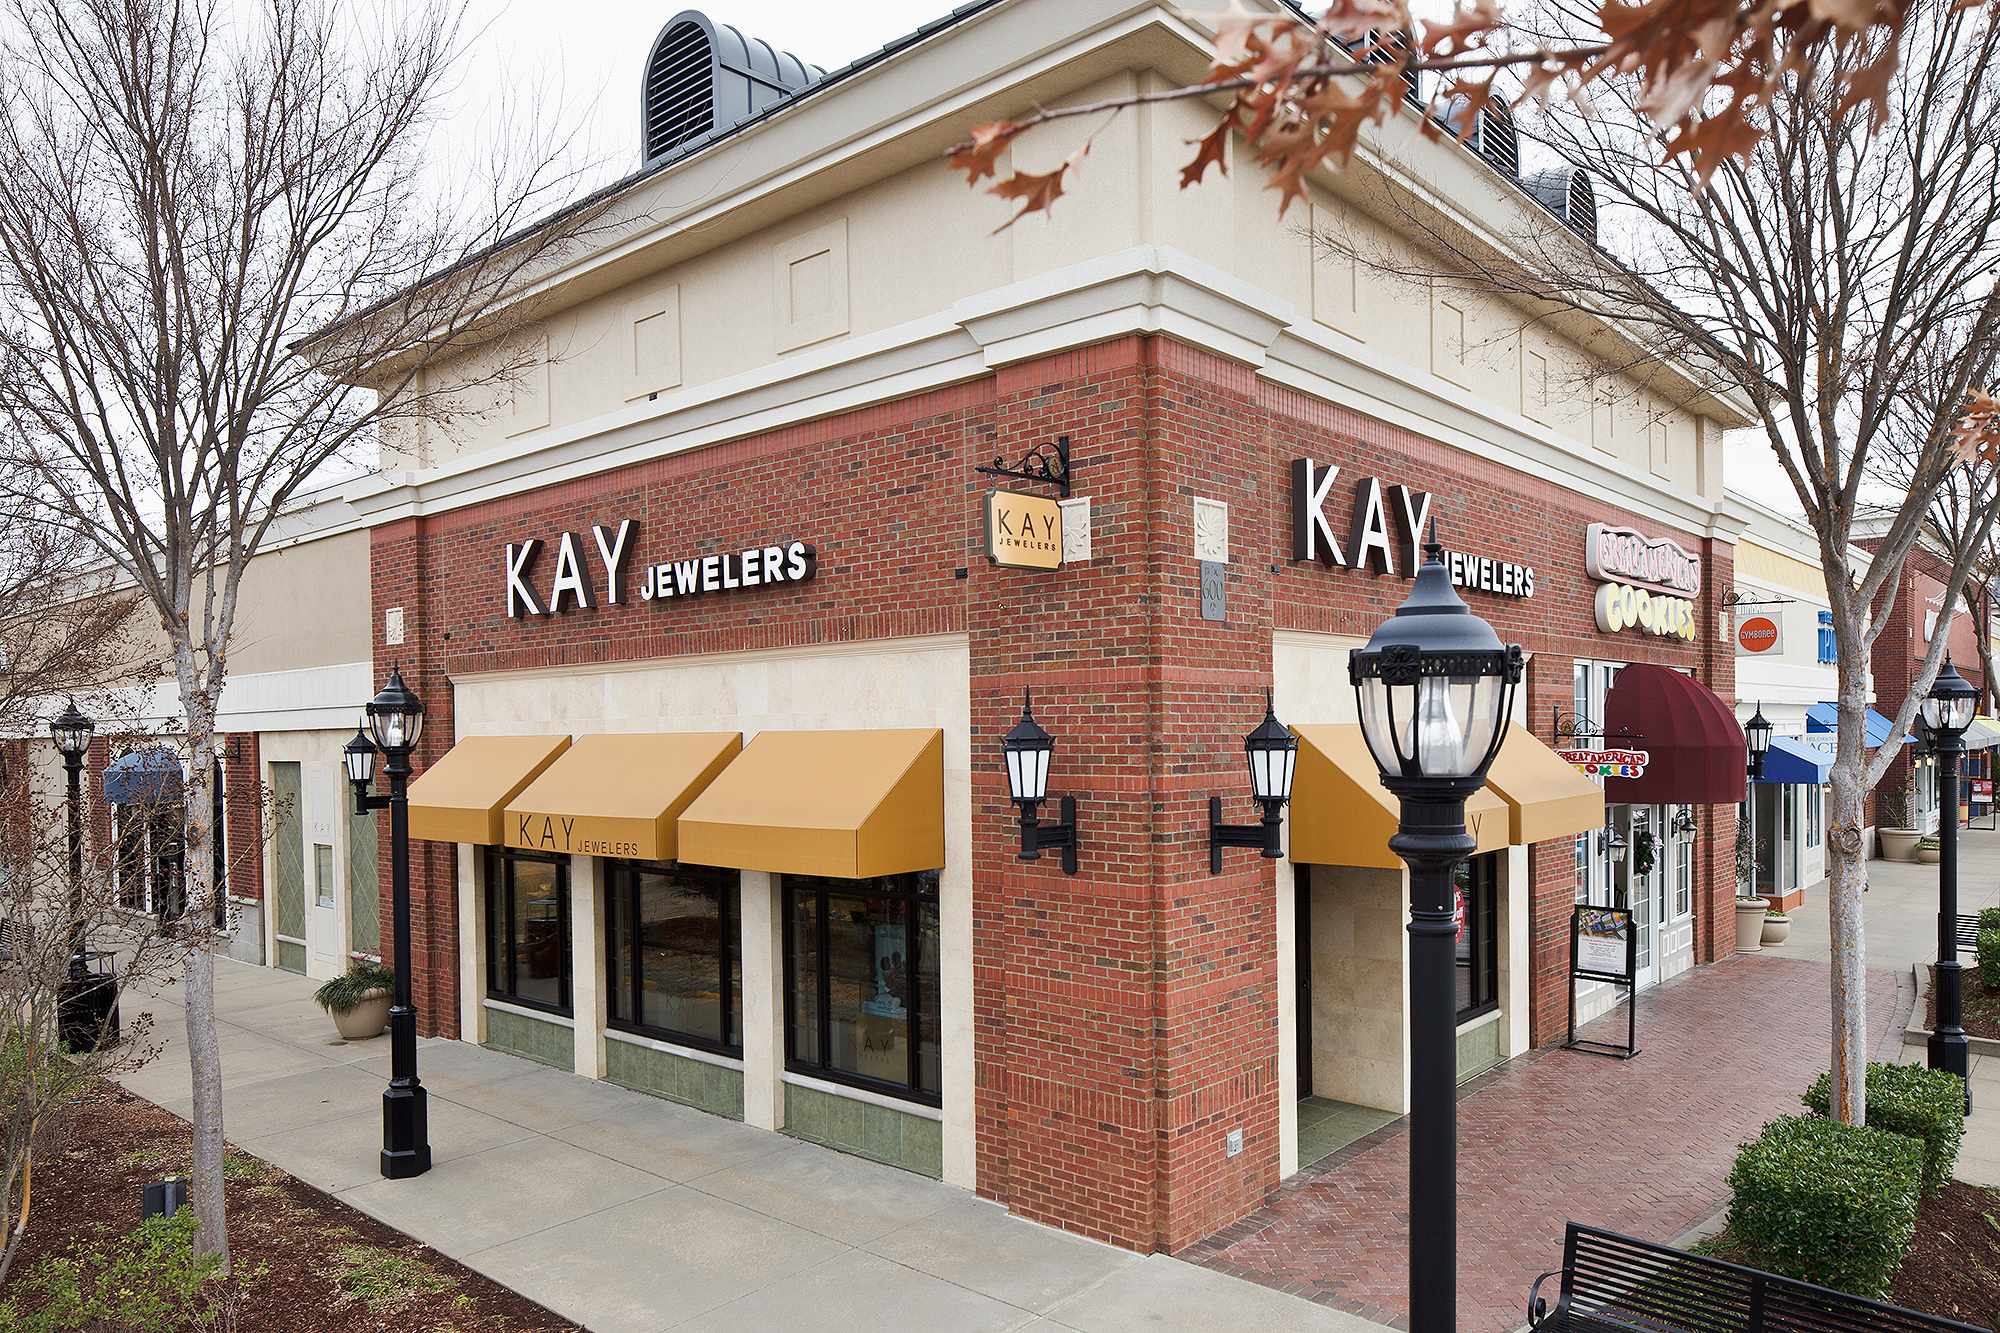 Kay Jewelers at a shopping mall in Tennessee